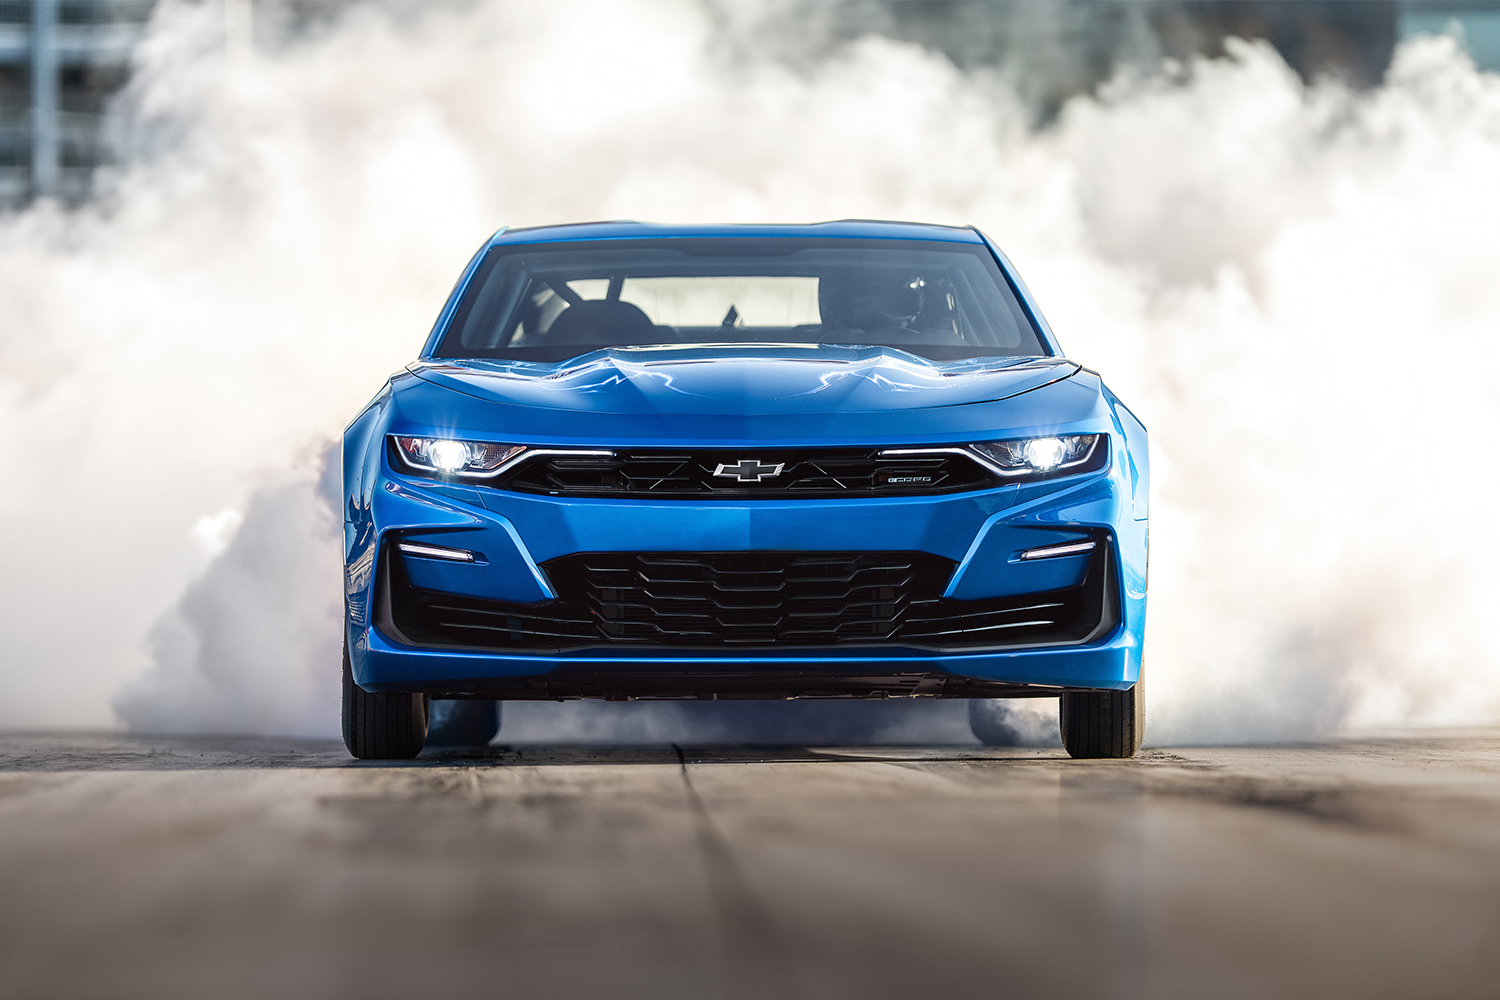 Chevrolet eCOPO Camaro Electric Drag Racer Concept Headed to